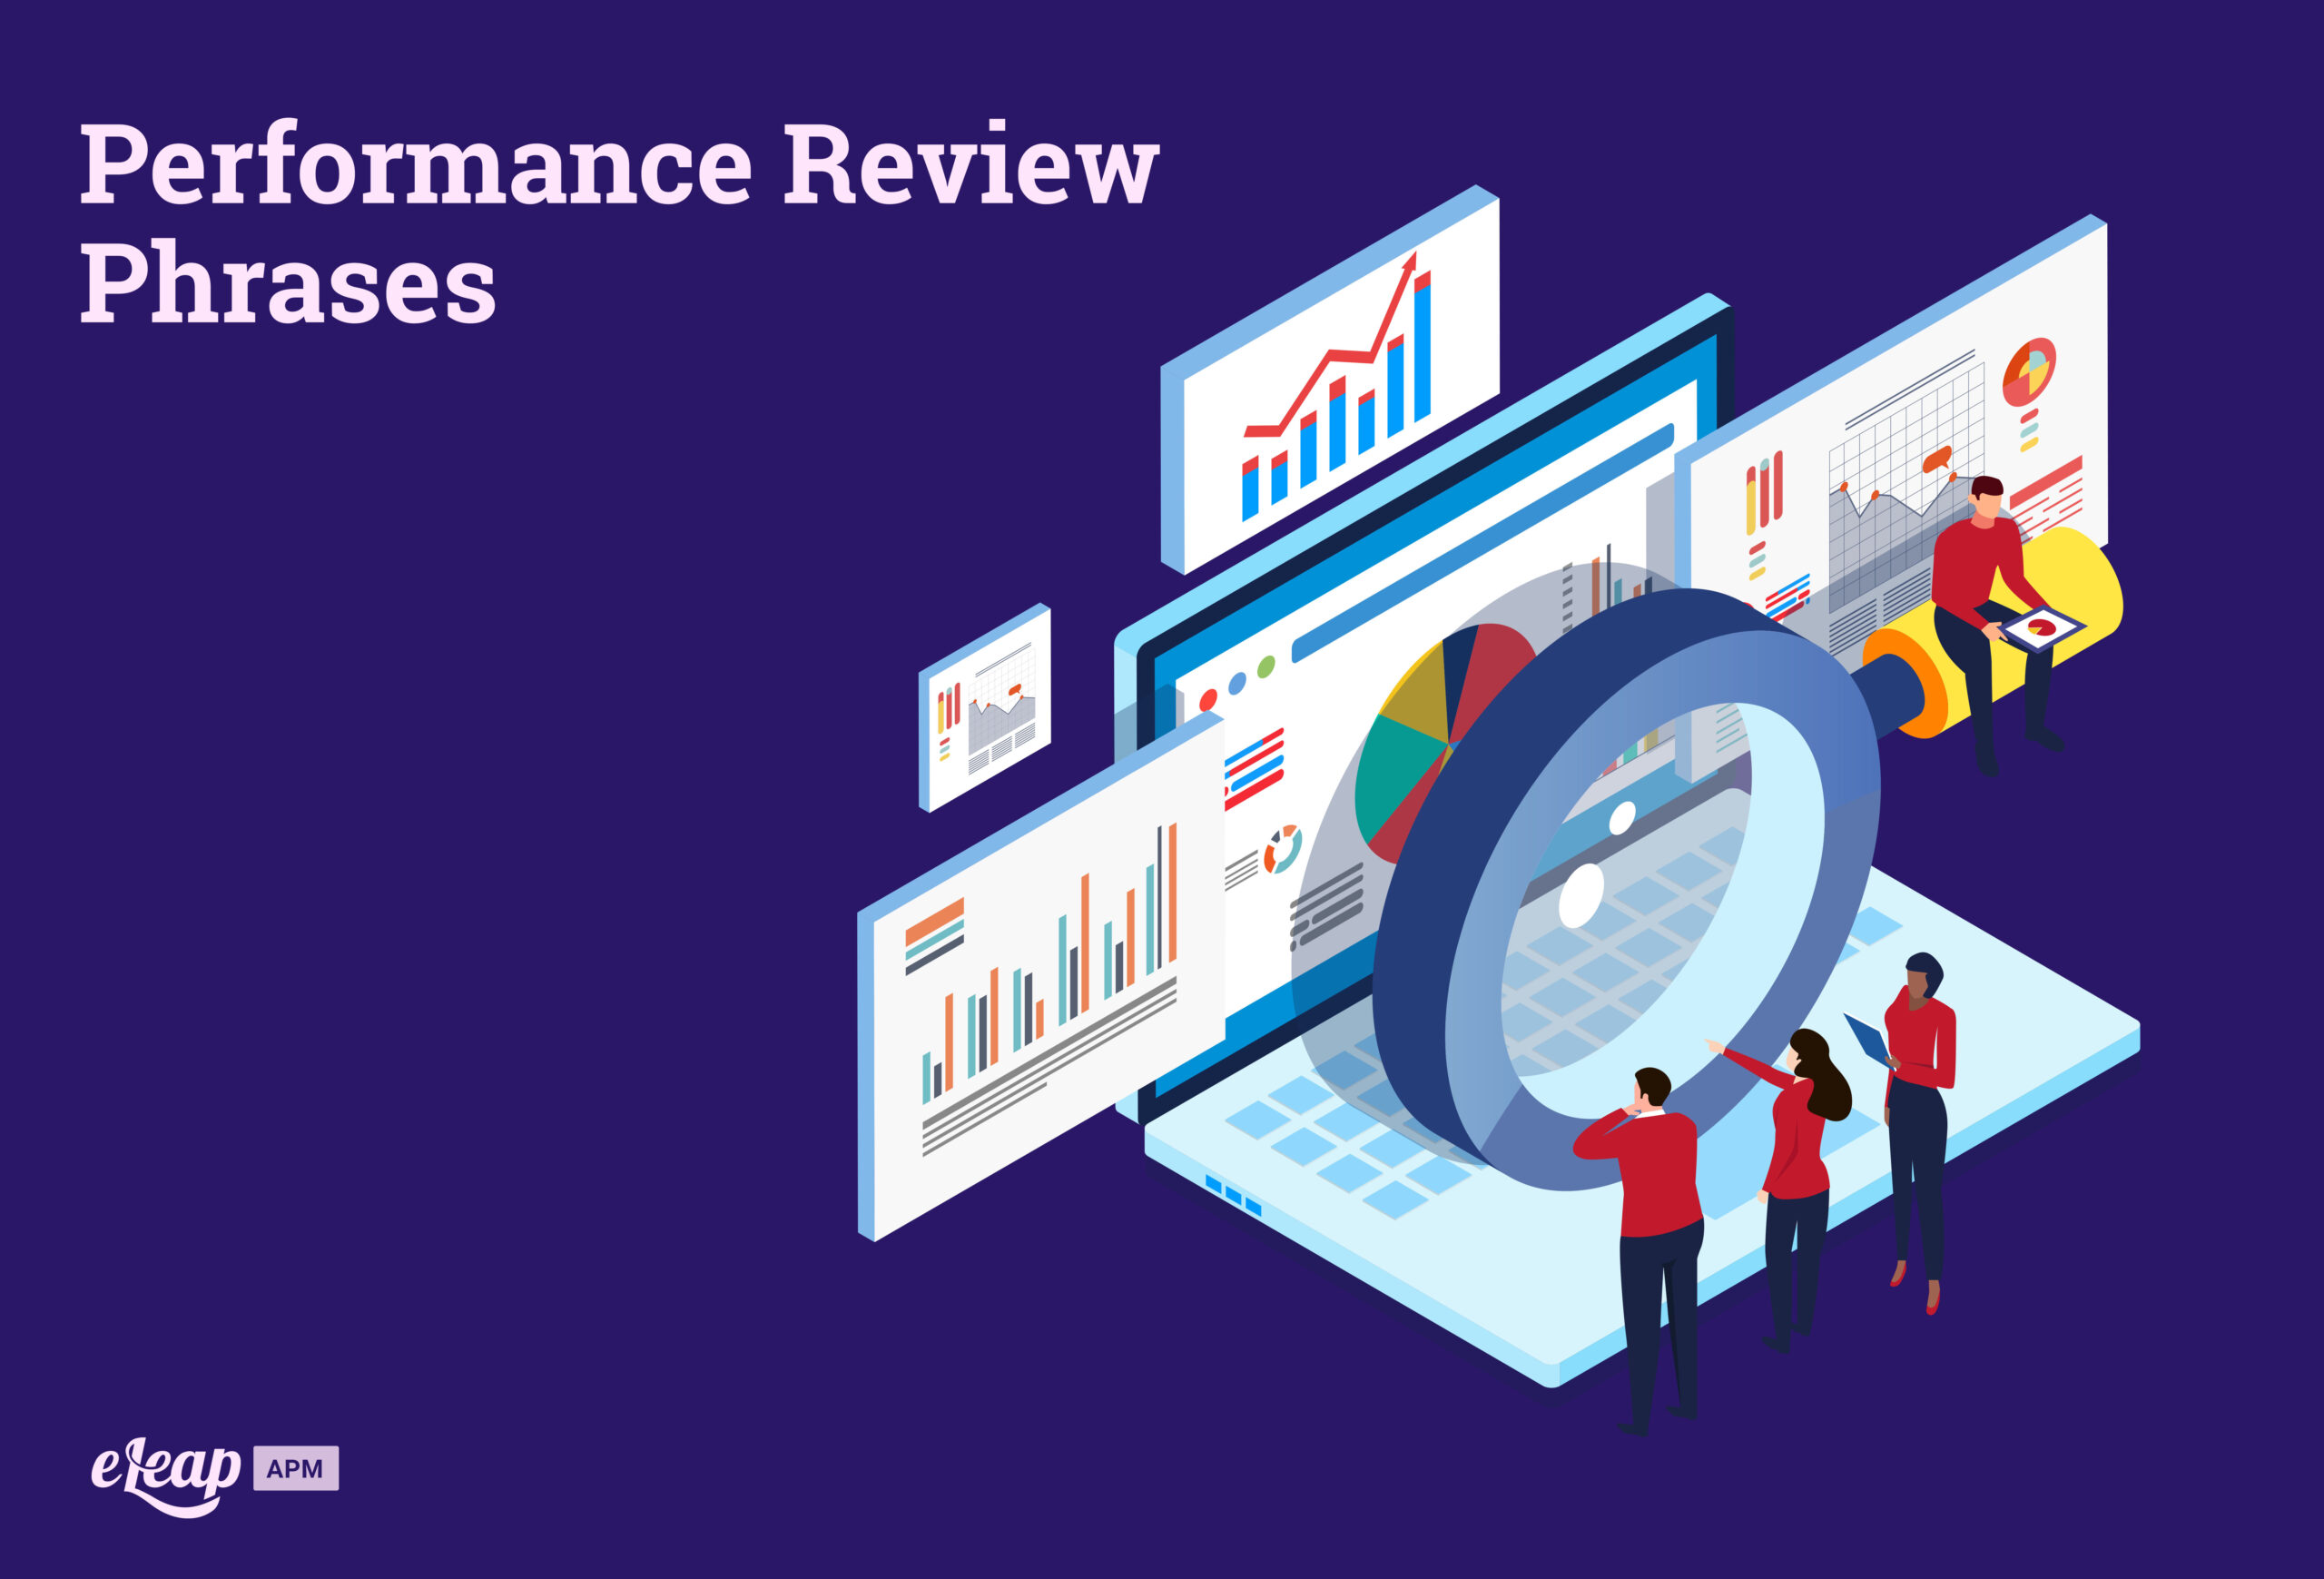 Performance Review Phrases